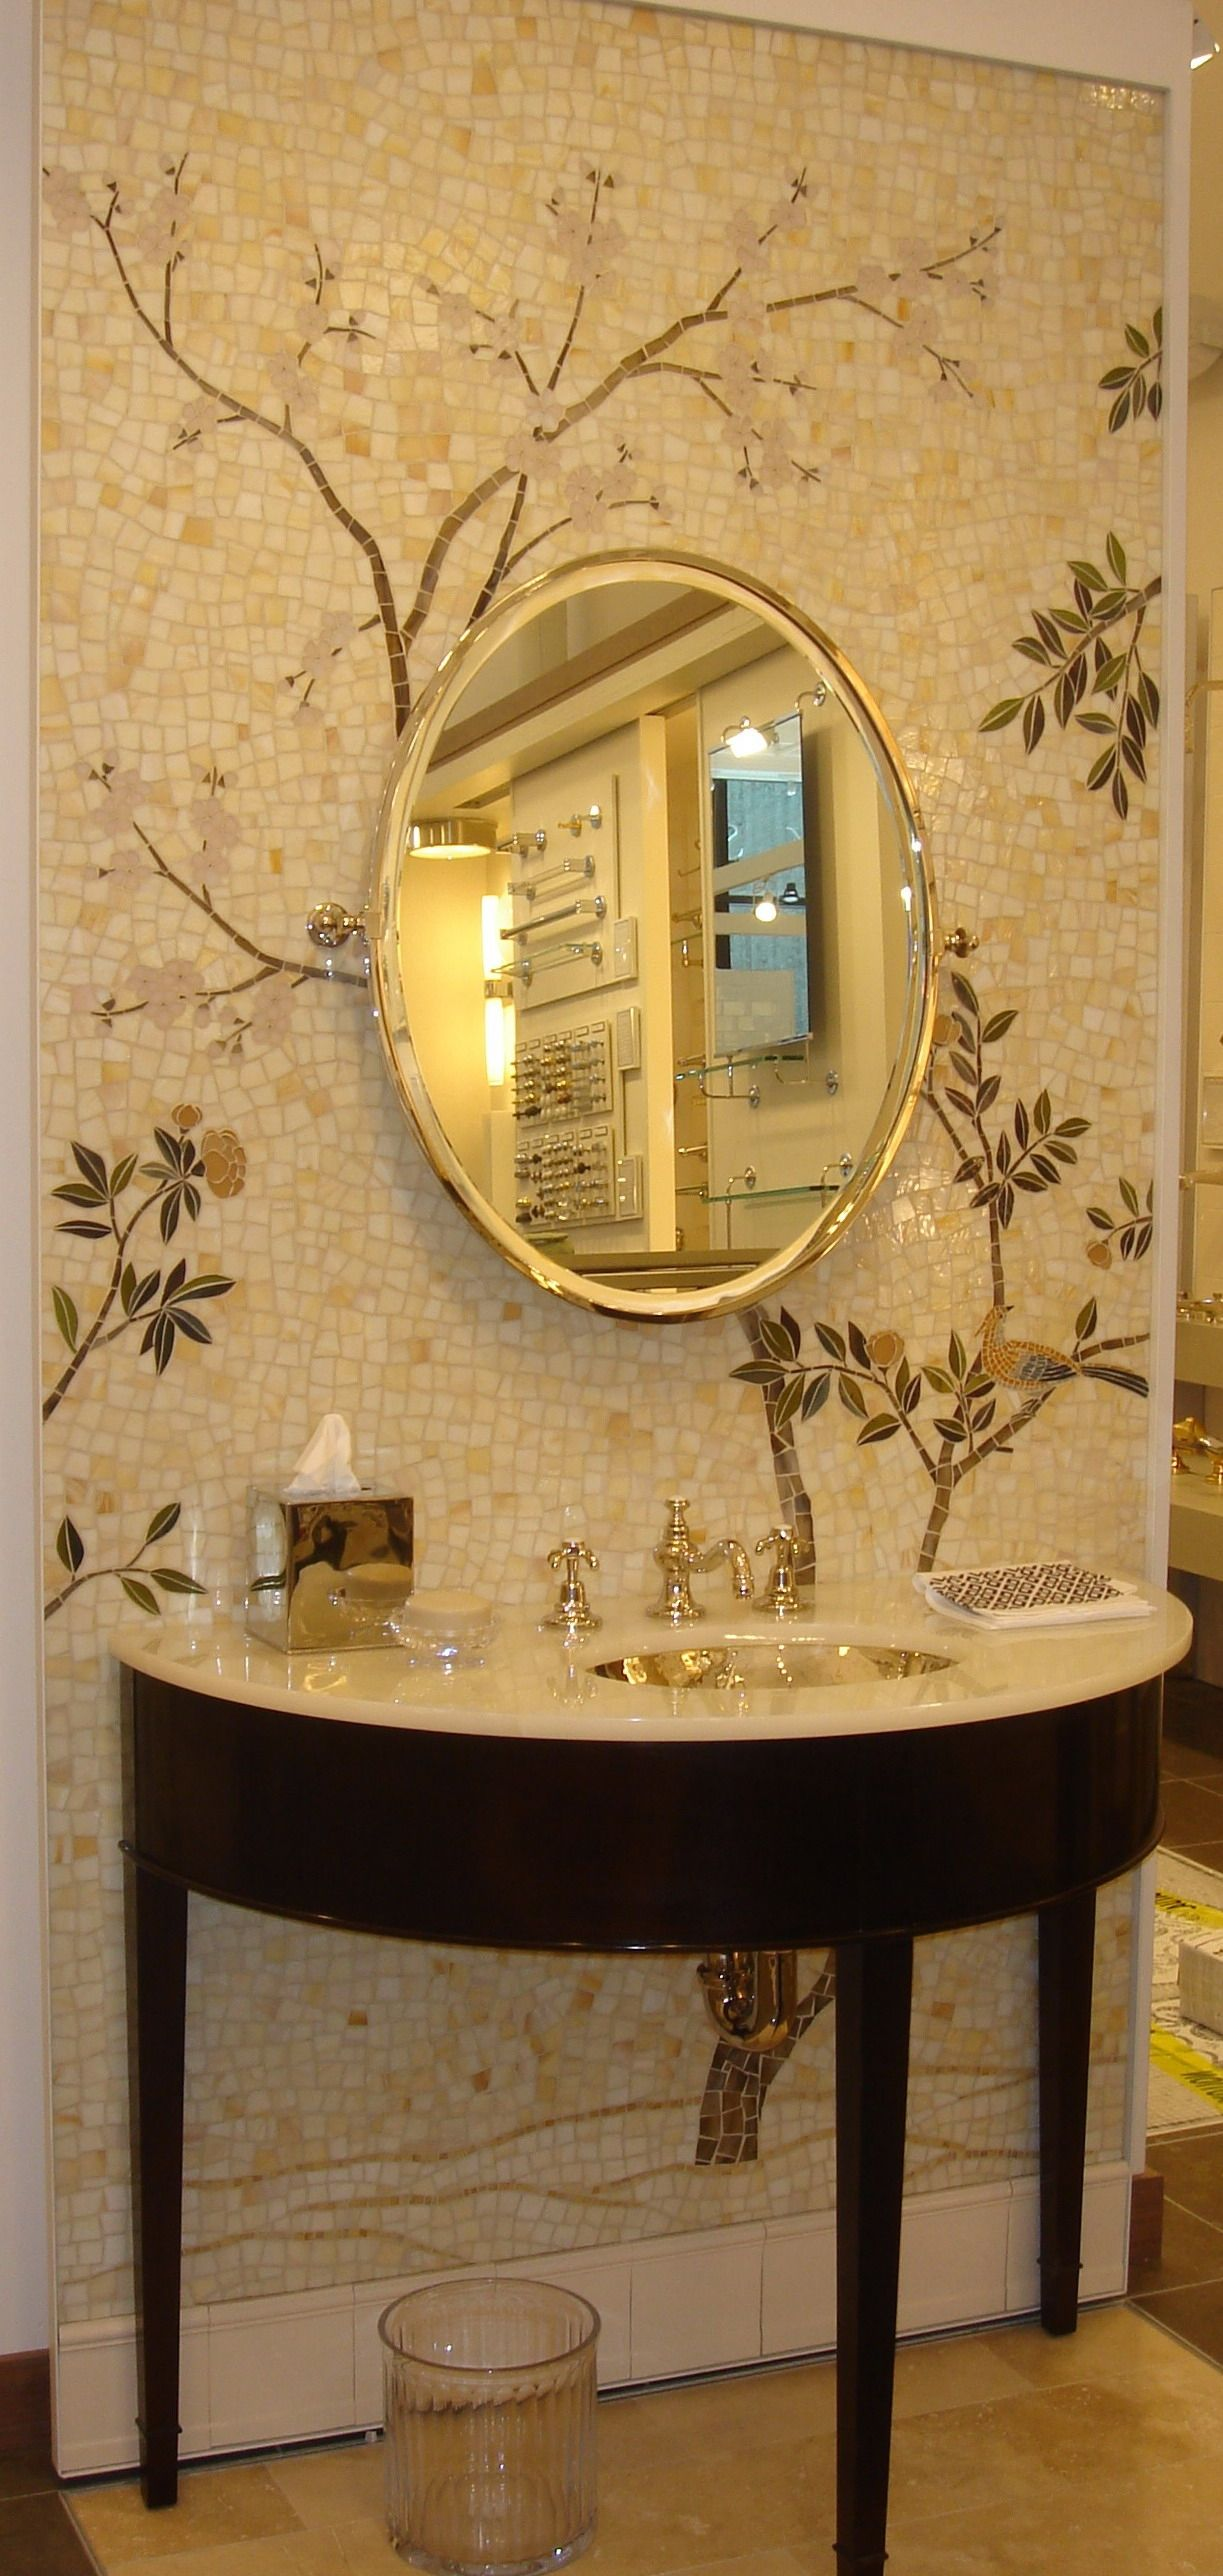 Tempo Mosaic And Etoile Faucet Display In The Flatiron Showroom